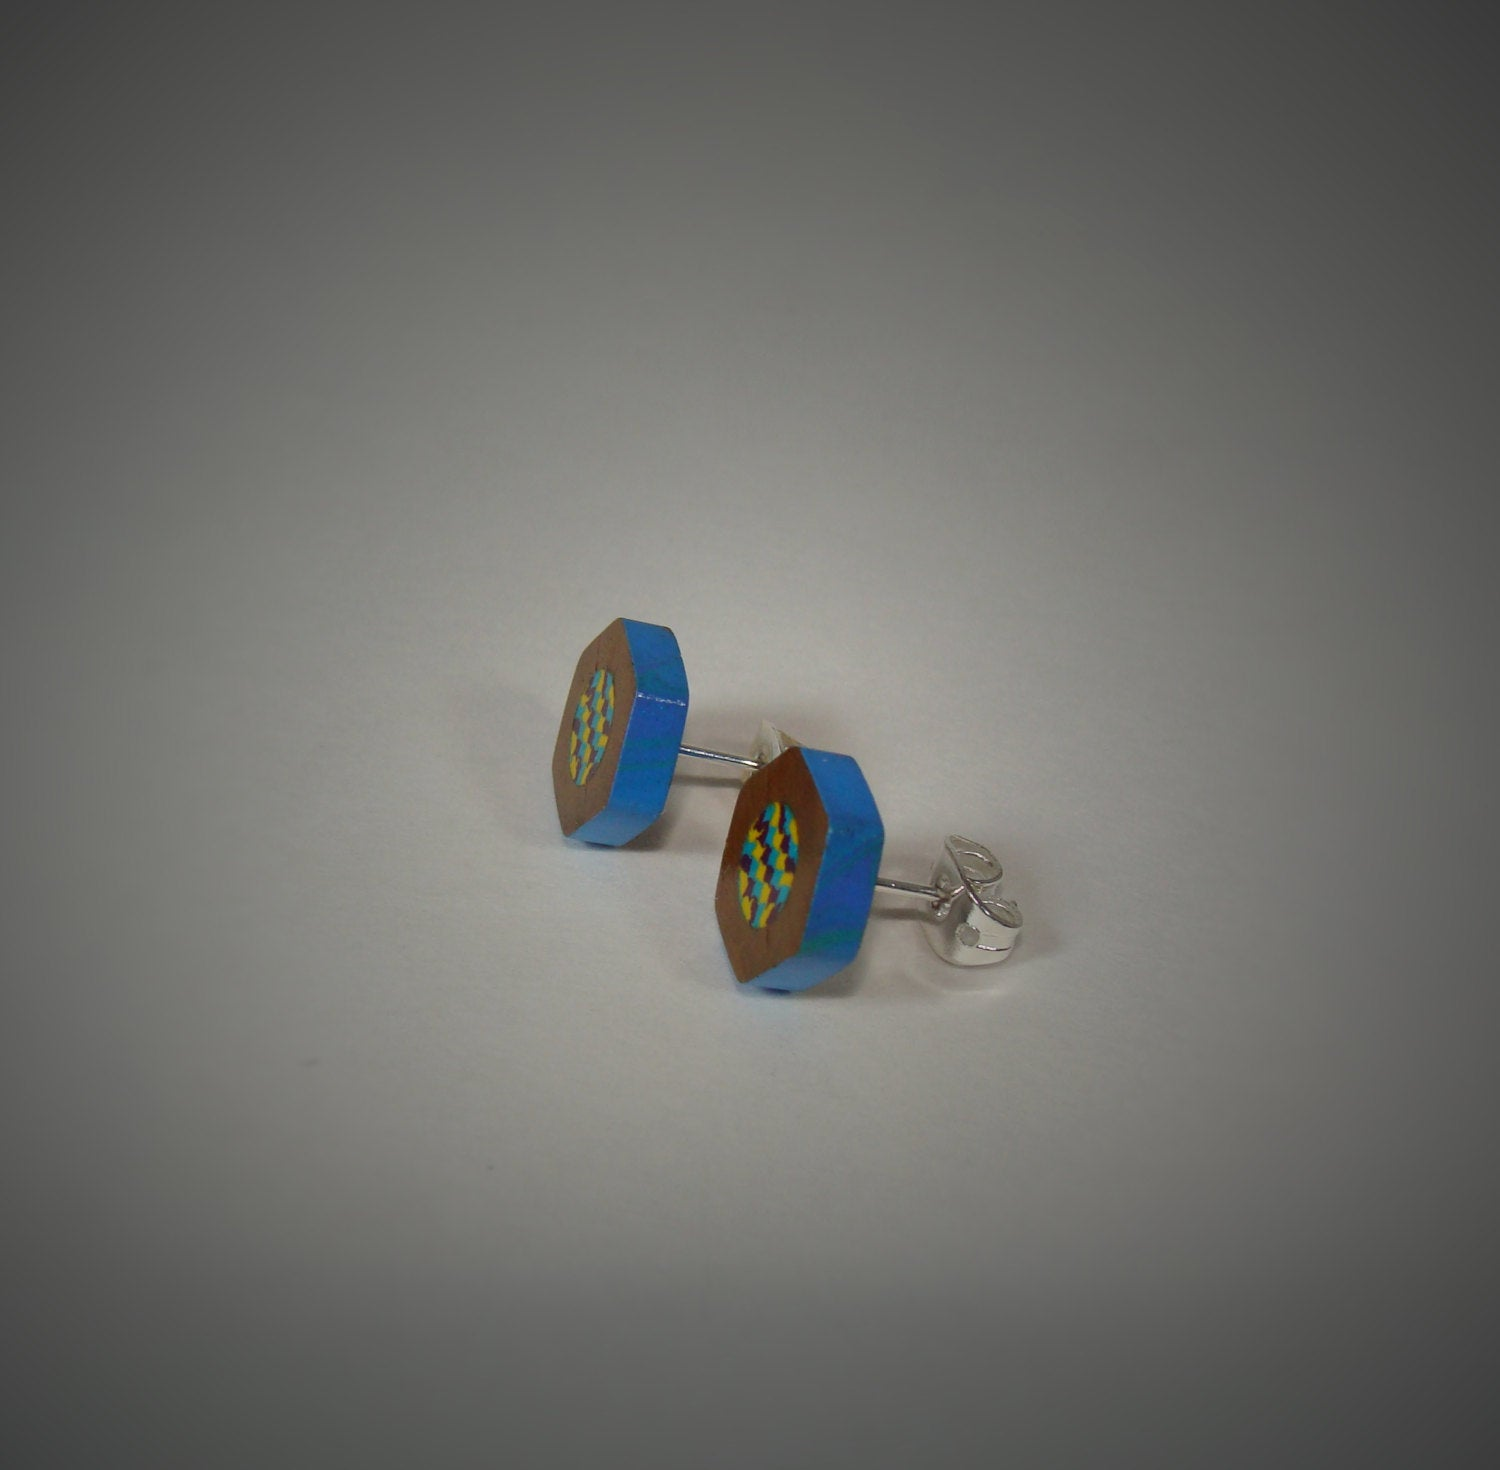 Colored Pencil Stud Earrings - Blue Maroon Yellow - Art and Soule